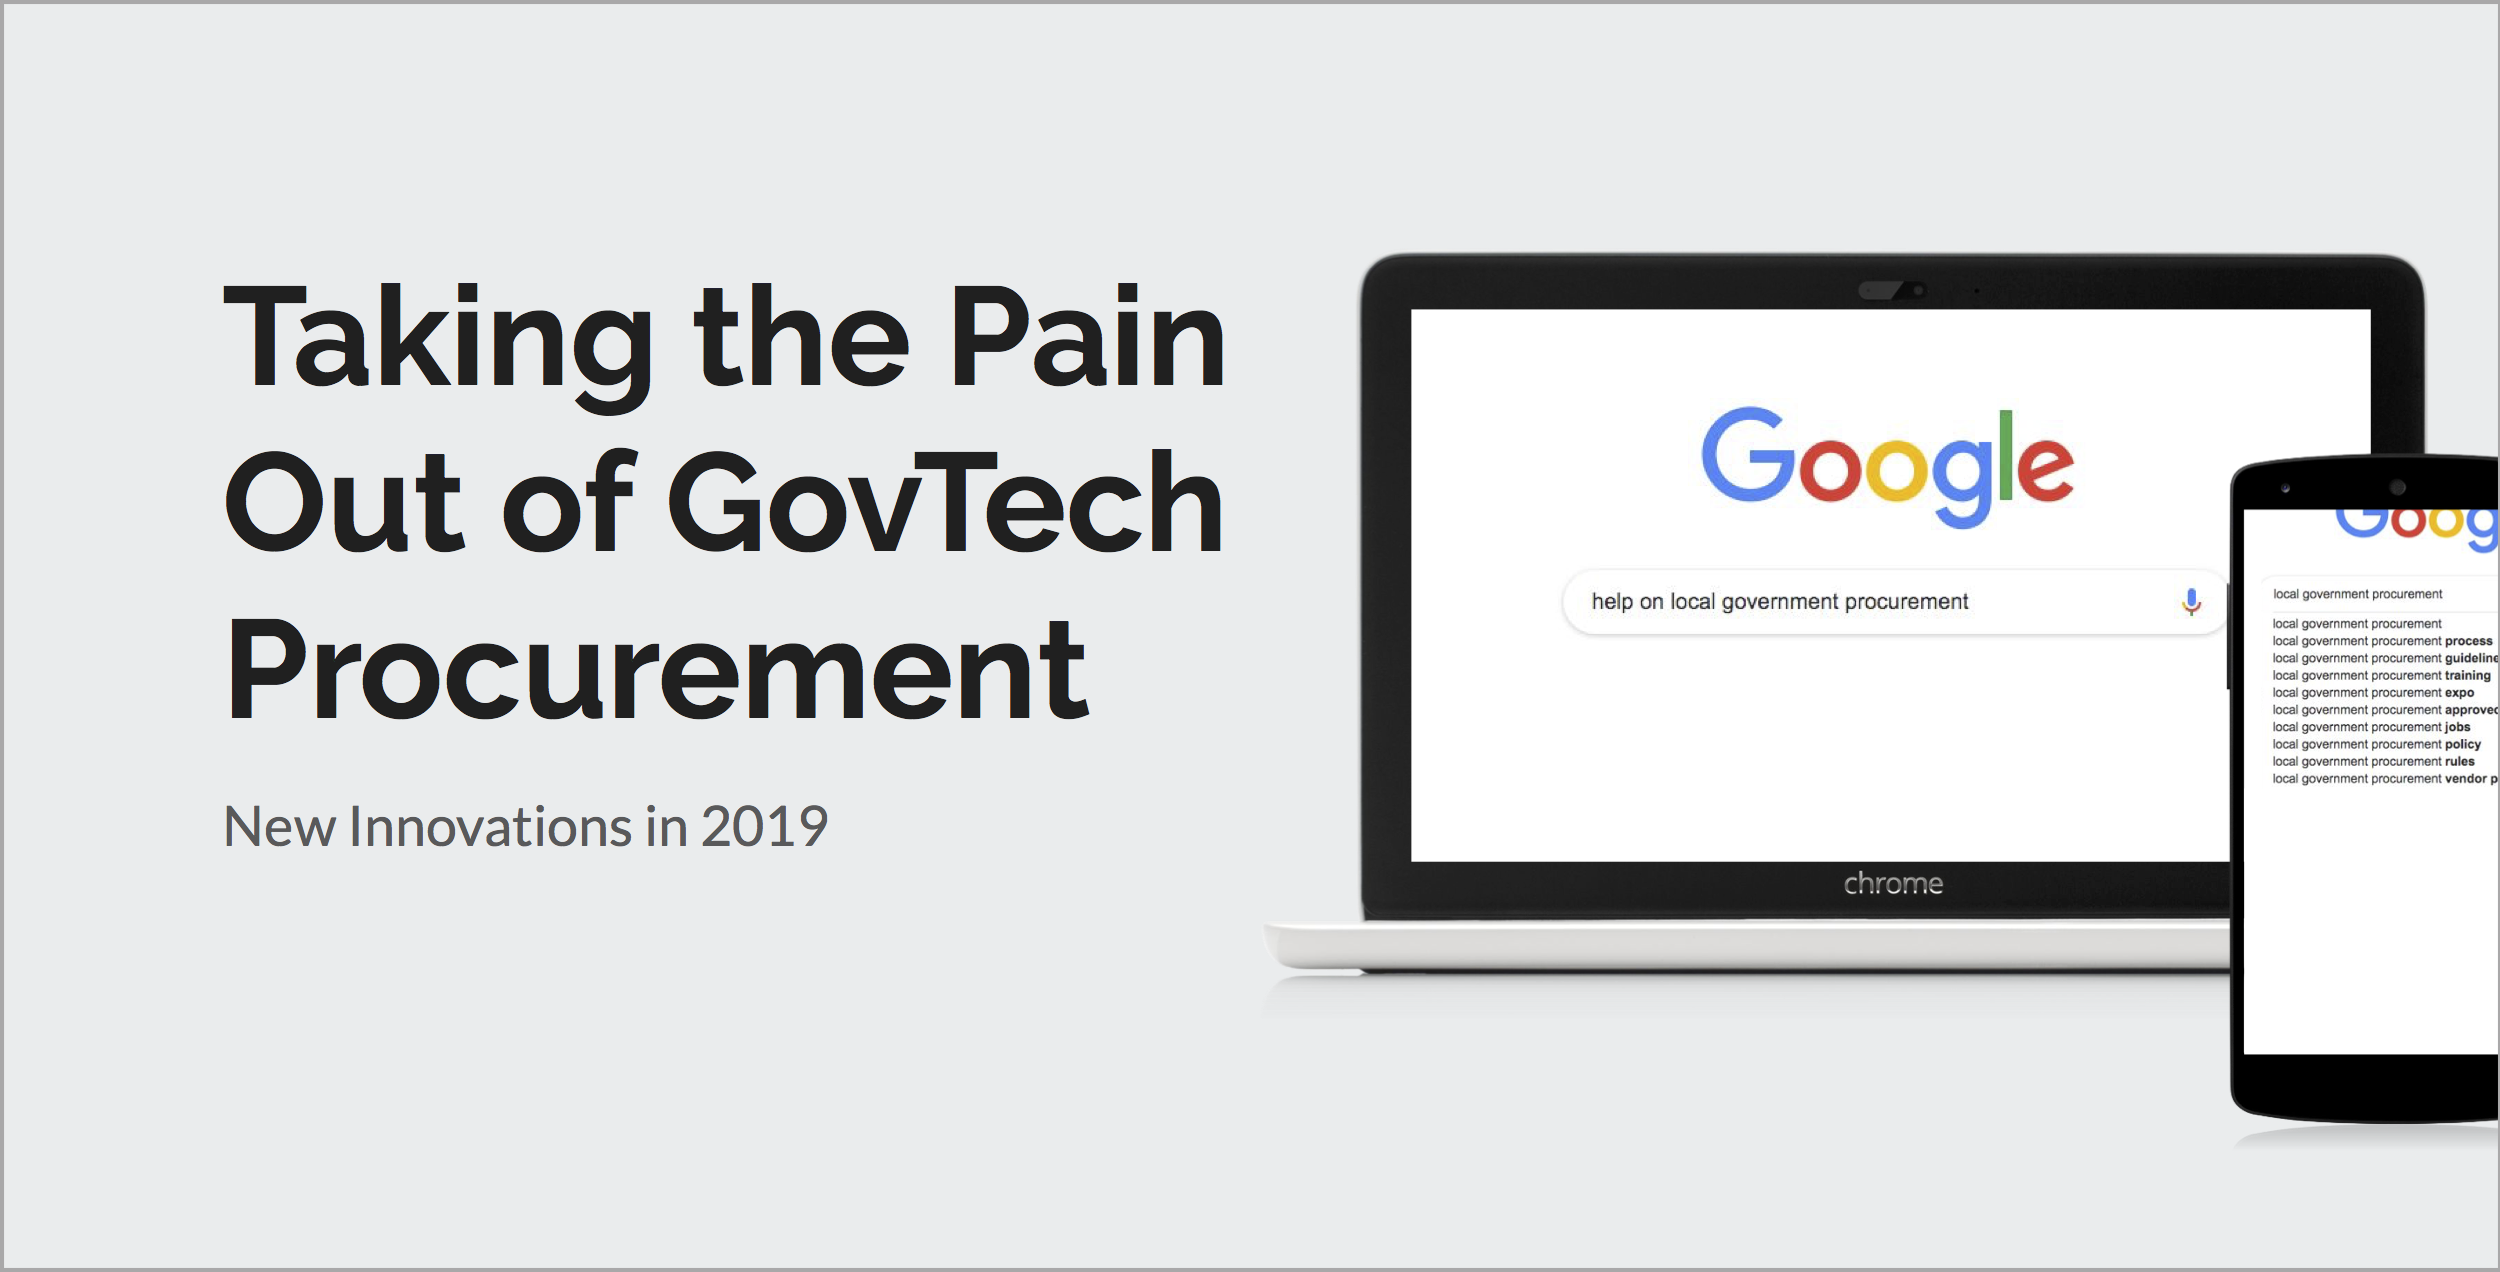 Taking the Pain Out of GovTech Procurement